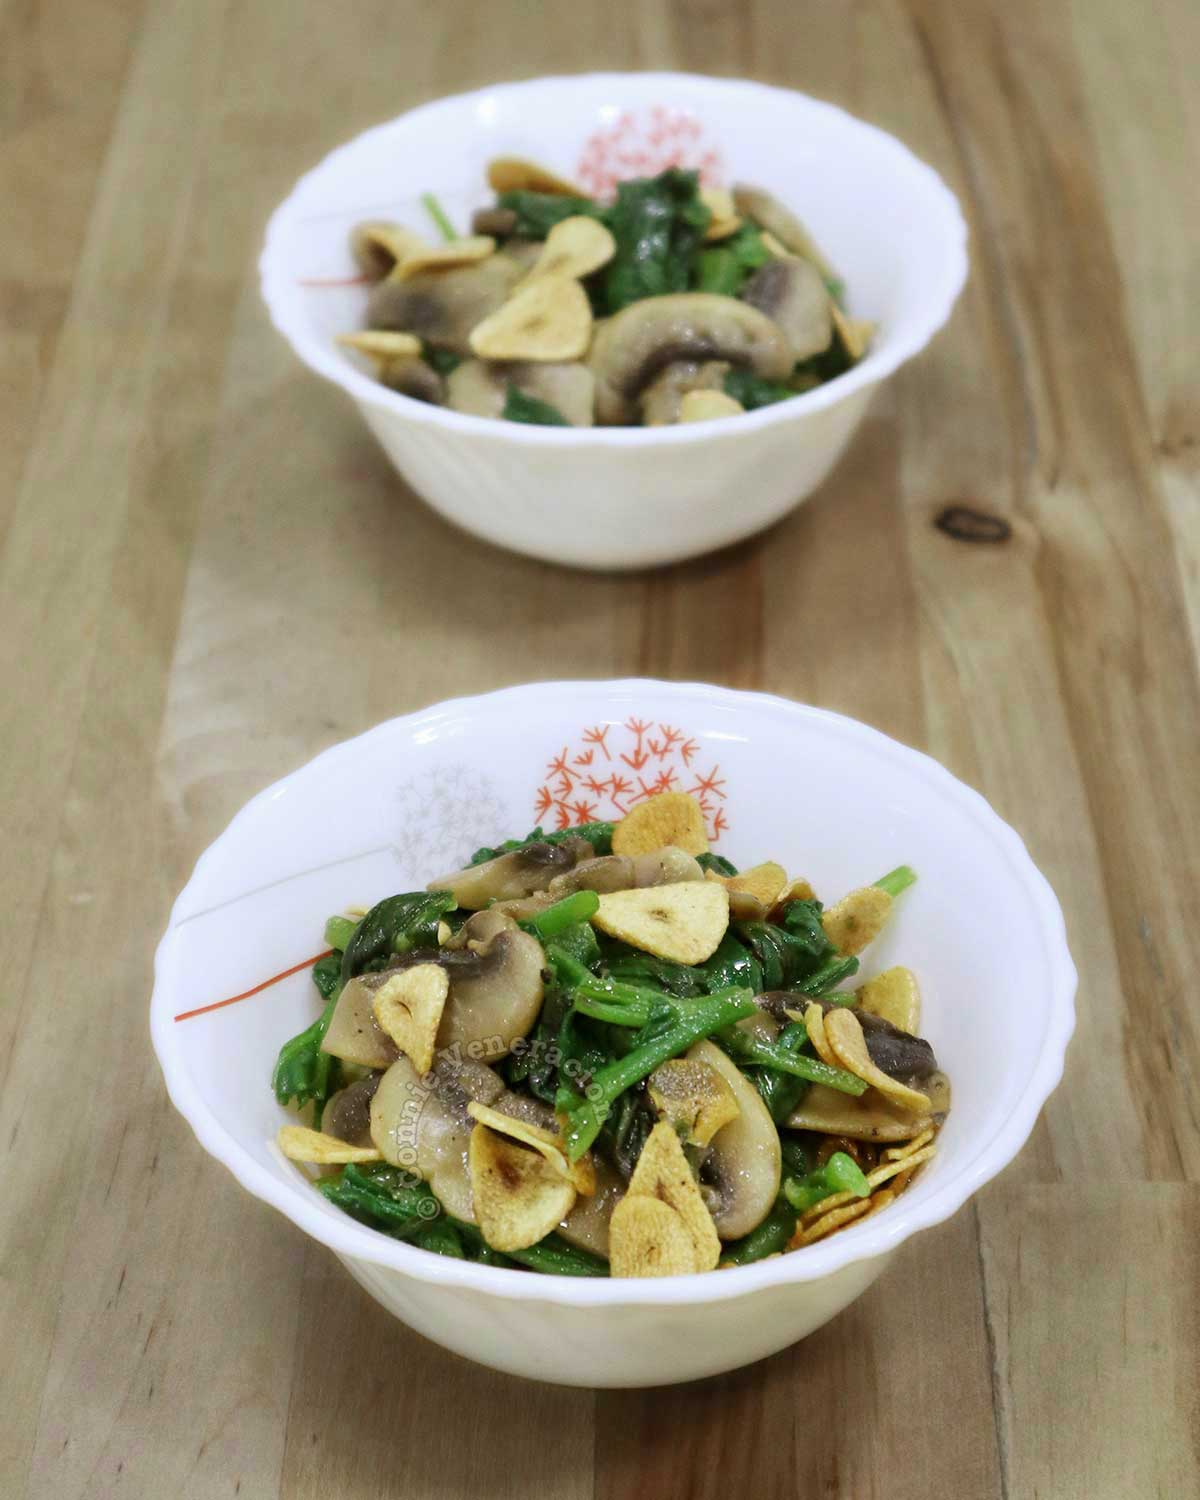 Garlic Butter Spinach and Mushrooms in Two Small White Bowls